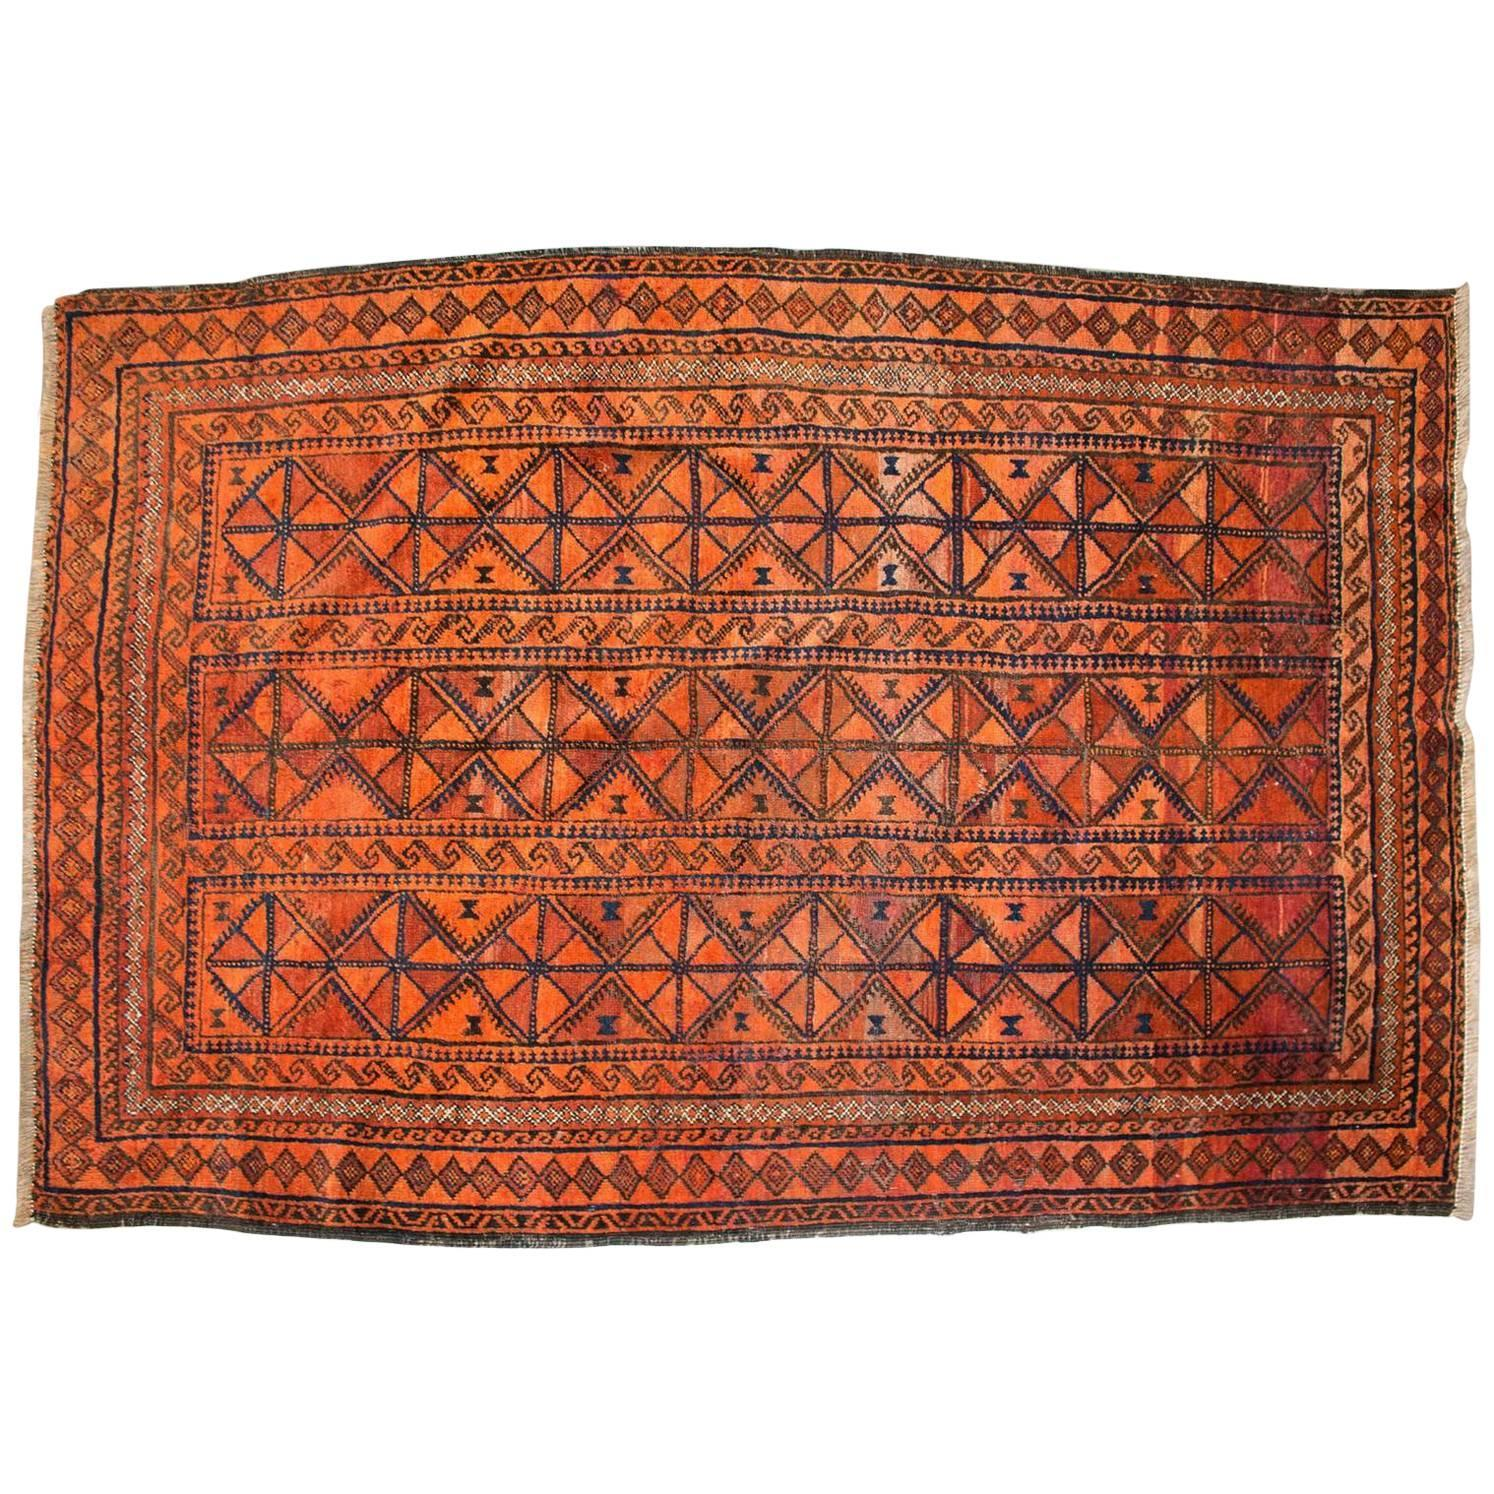 Warm baluch rug from eastern persia for sale at 1stdibs for Warm rugs